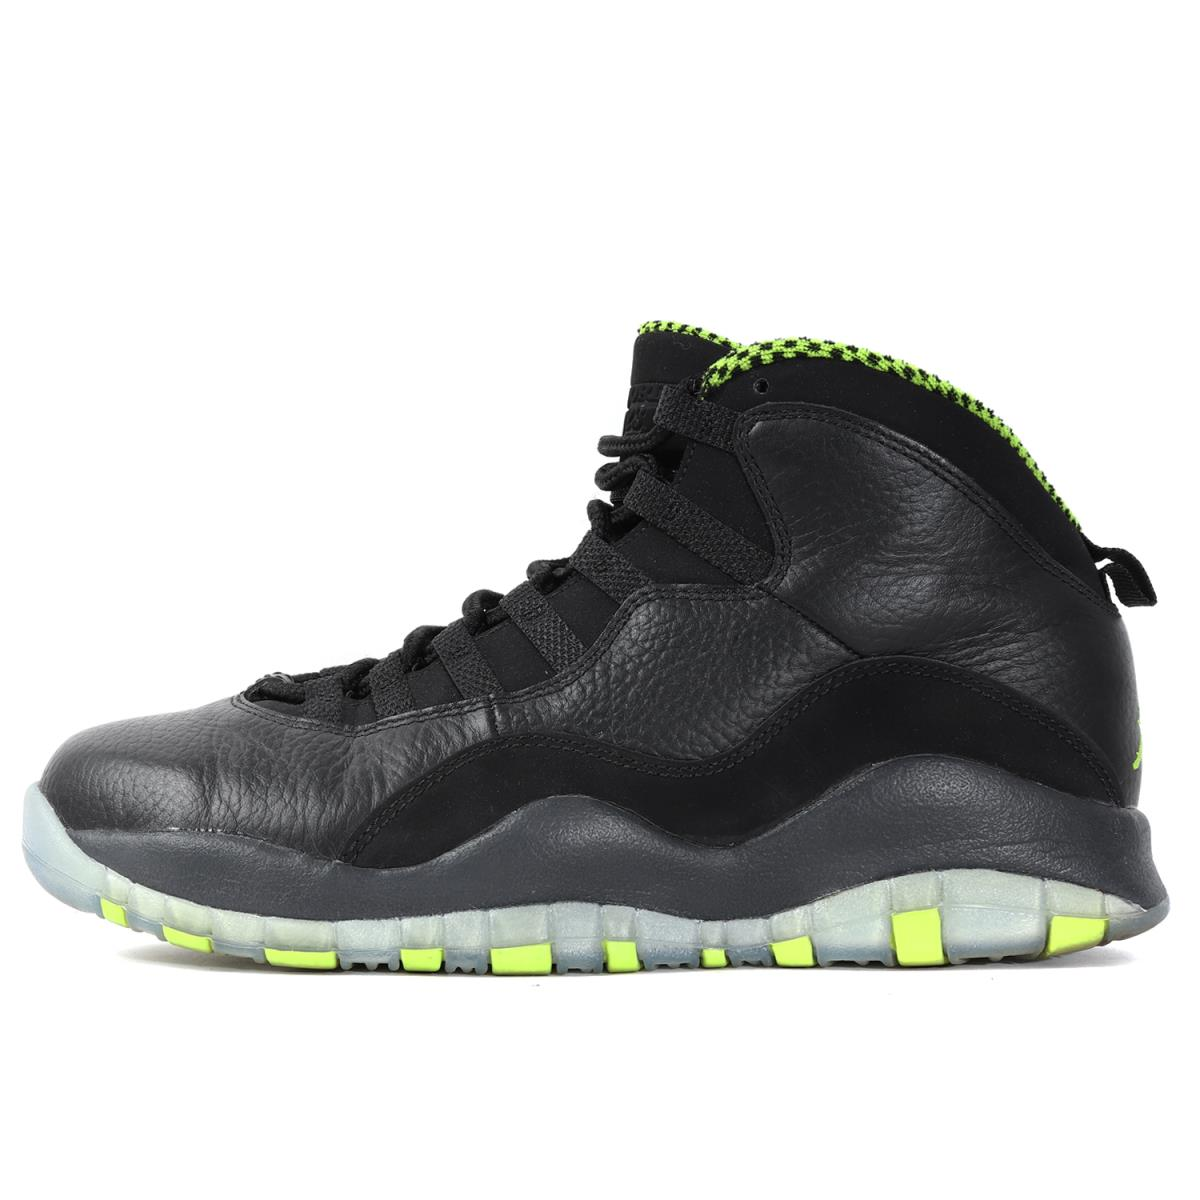 official photos 083ea 8cec8 NIKE (Nike) AIR JORDAN 10 RETRO VENOM GREEN (310,805-033) black X ベノムグリーン  US8.5(26.5cm)